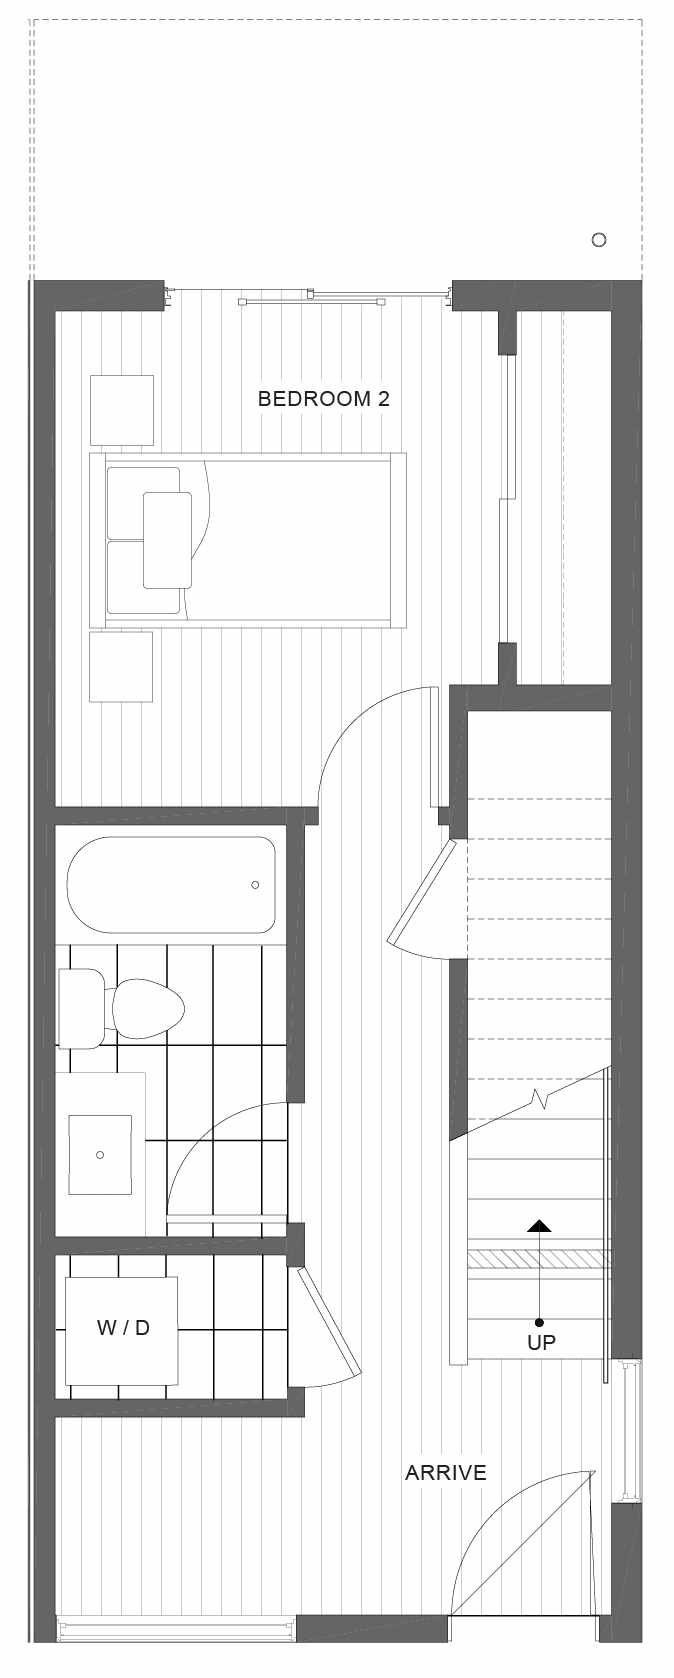 First Floor Plan of 1105F 14th Ave in the Corazon Central Townhomes